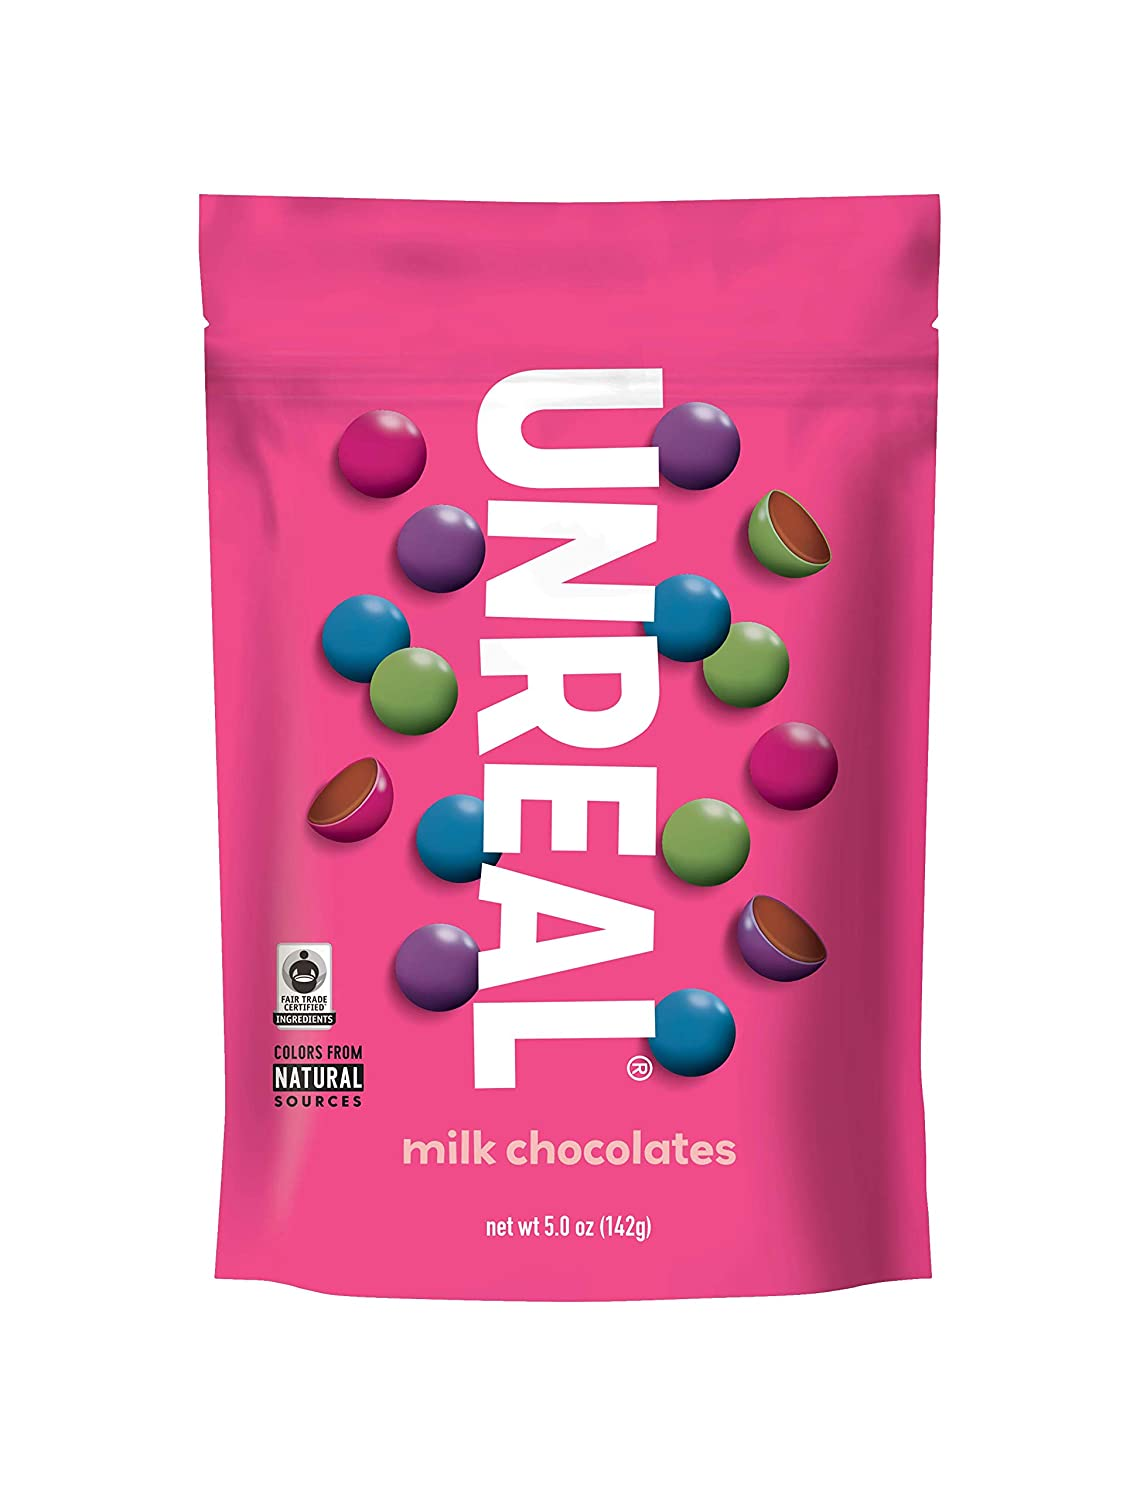 UNREAL Milk Chocolate Gems | Colors from Nature, rBST free, Nothing Artificial | 3 Bags